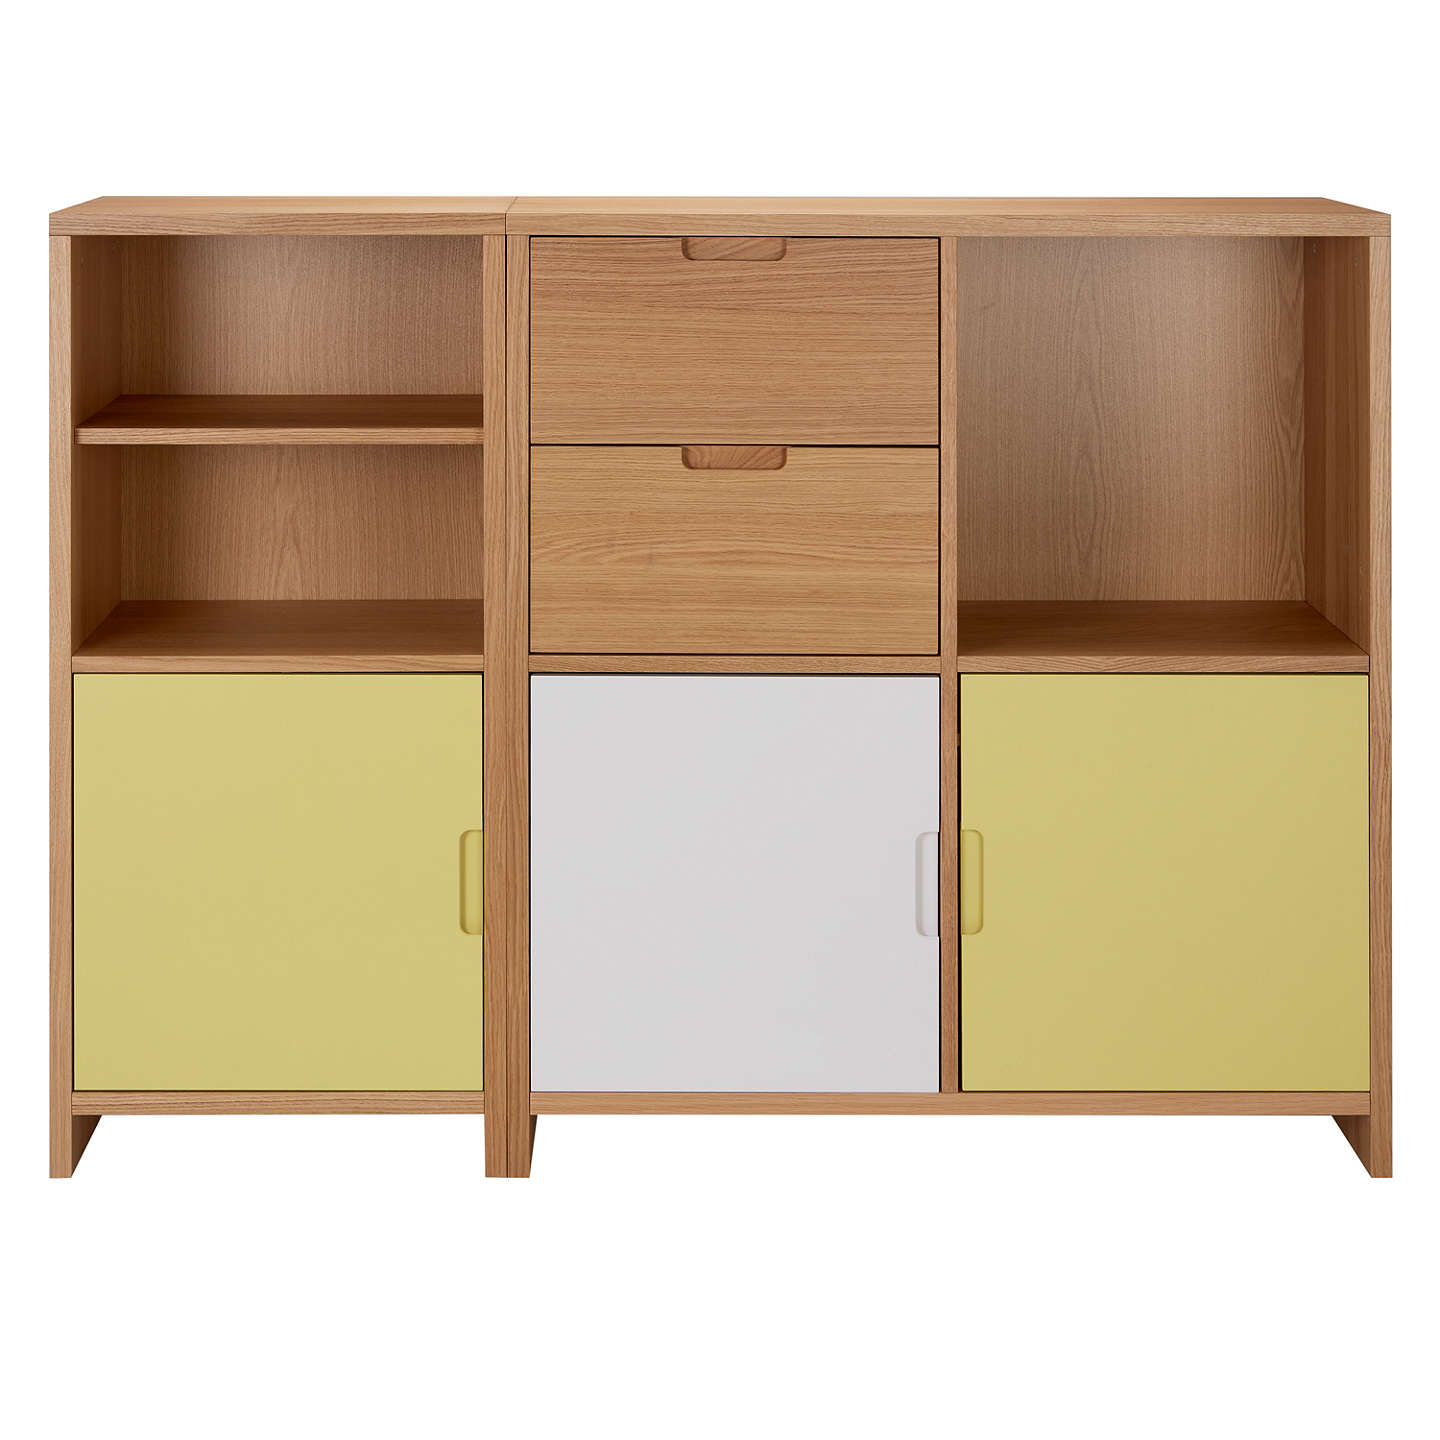 BuyHouse by John Lewis Oxford Shelving Cube Unit with 3 Doors and 2 Drawers, Dandelion / White Online at johnlewis.com